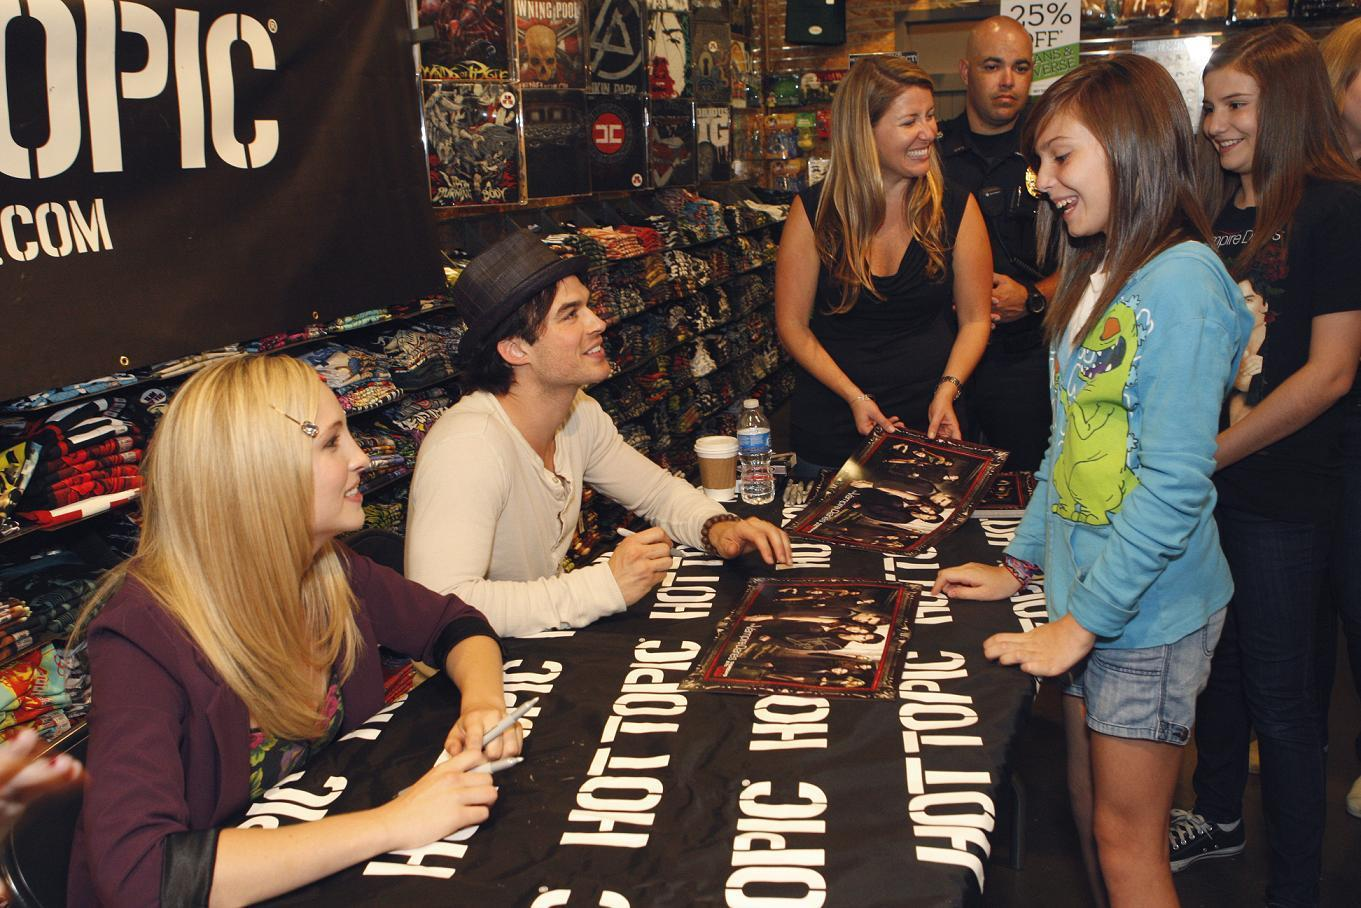 http://images4.fanpop.com/image/photos/16200000/Hot-Topic-Tour-in-Texas-the-vampire-diaries-16246875-1361-908.jpg